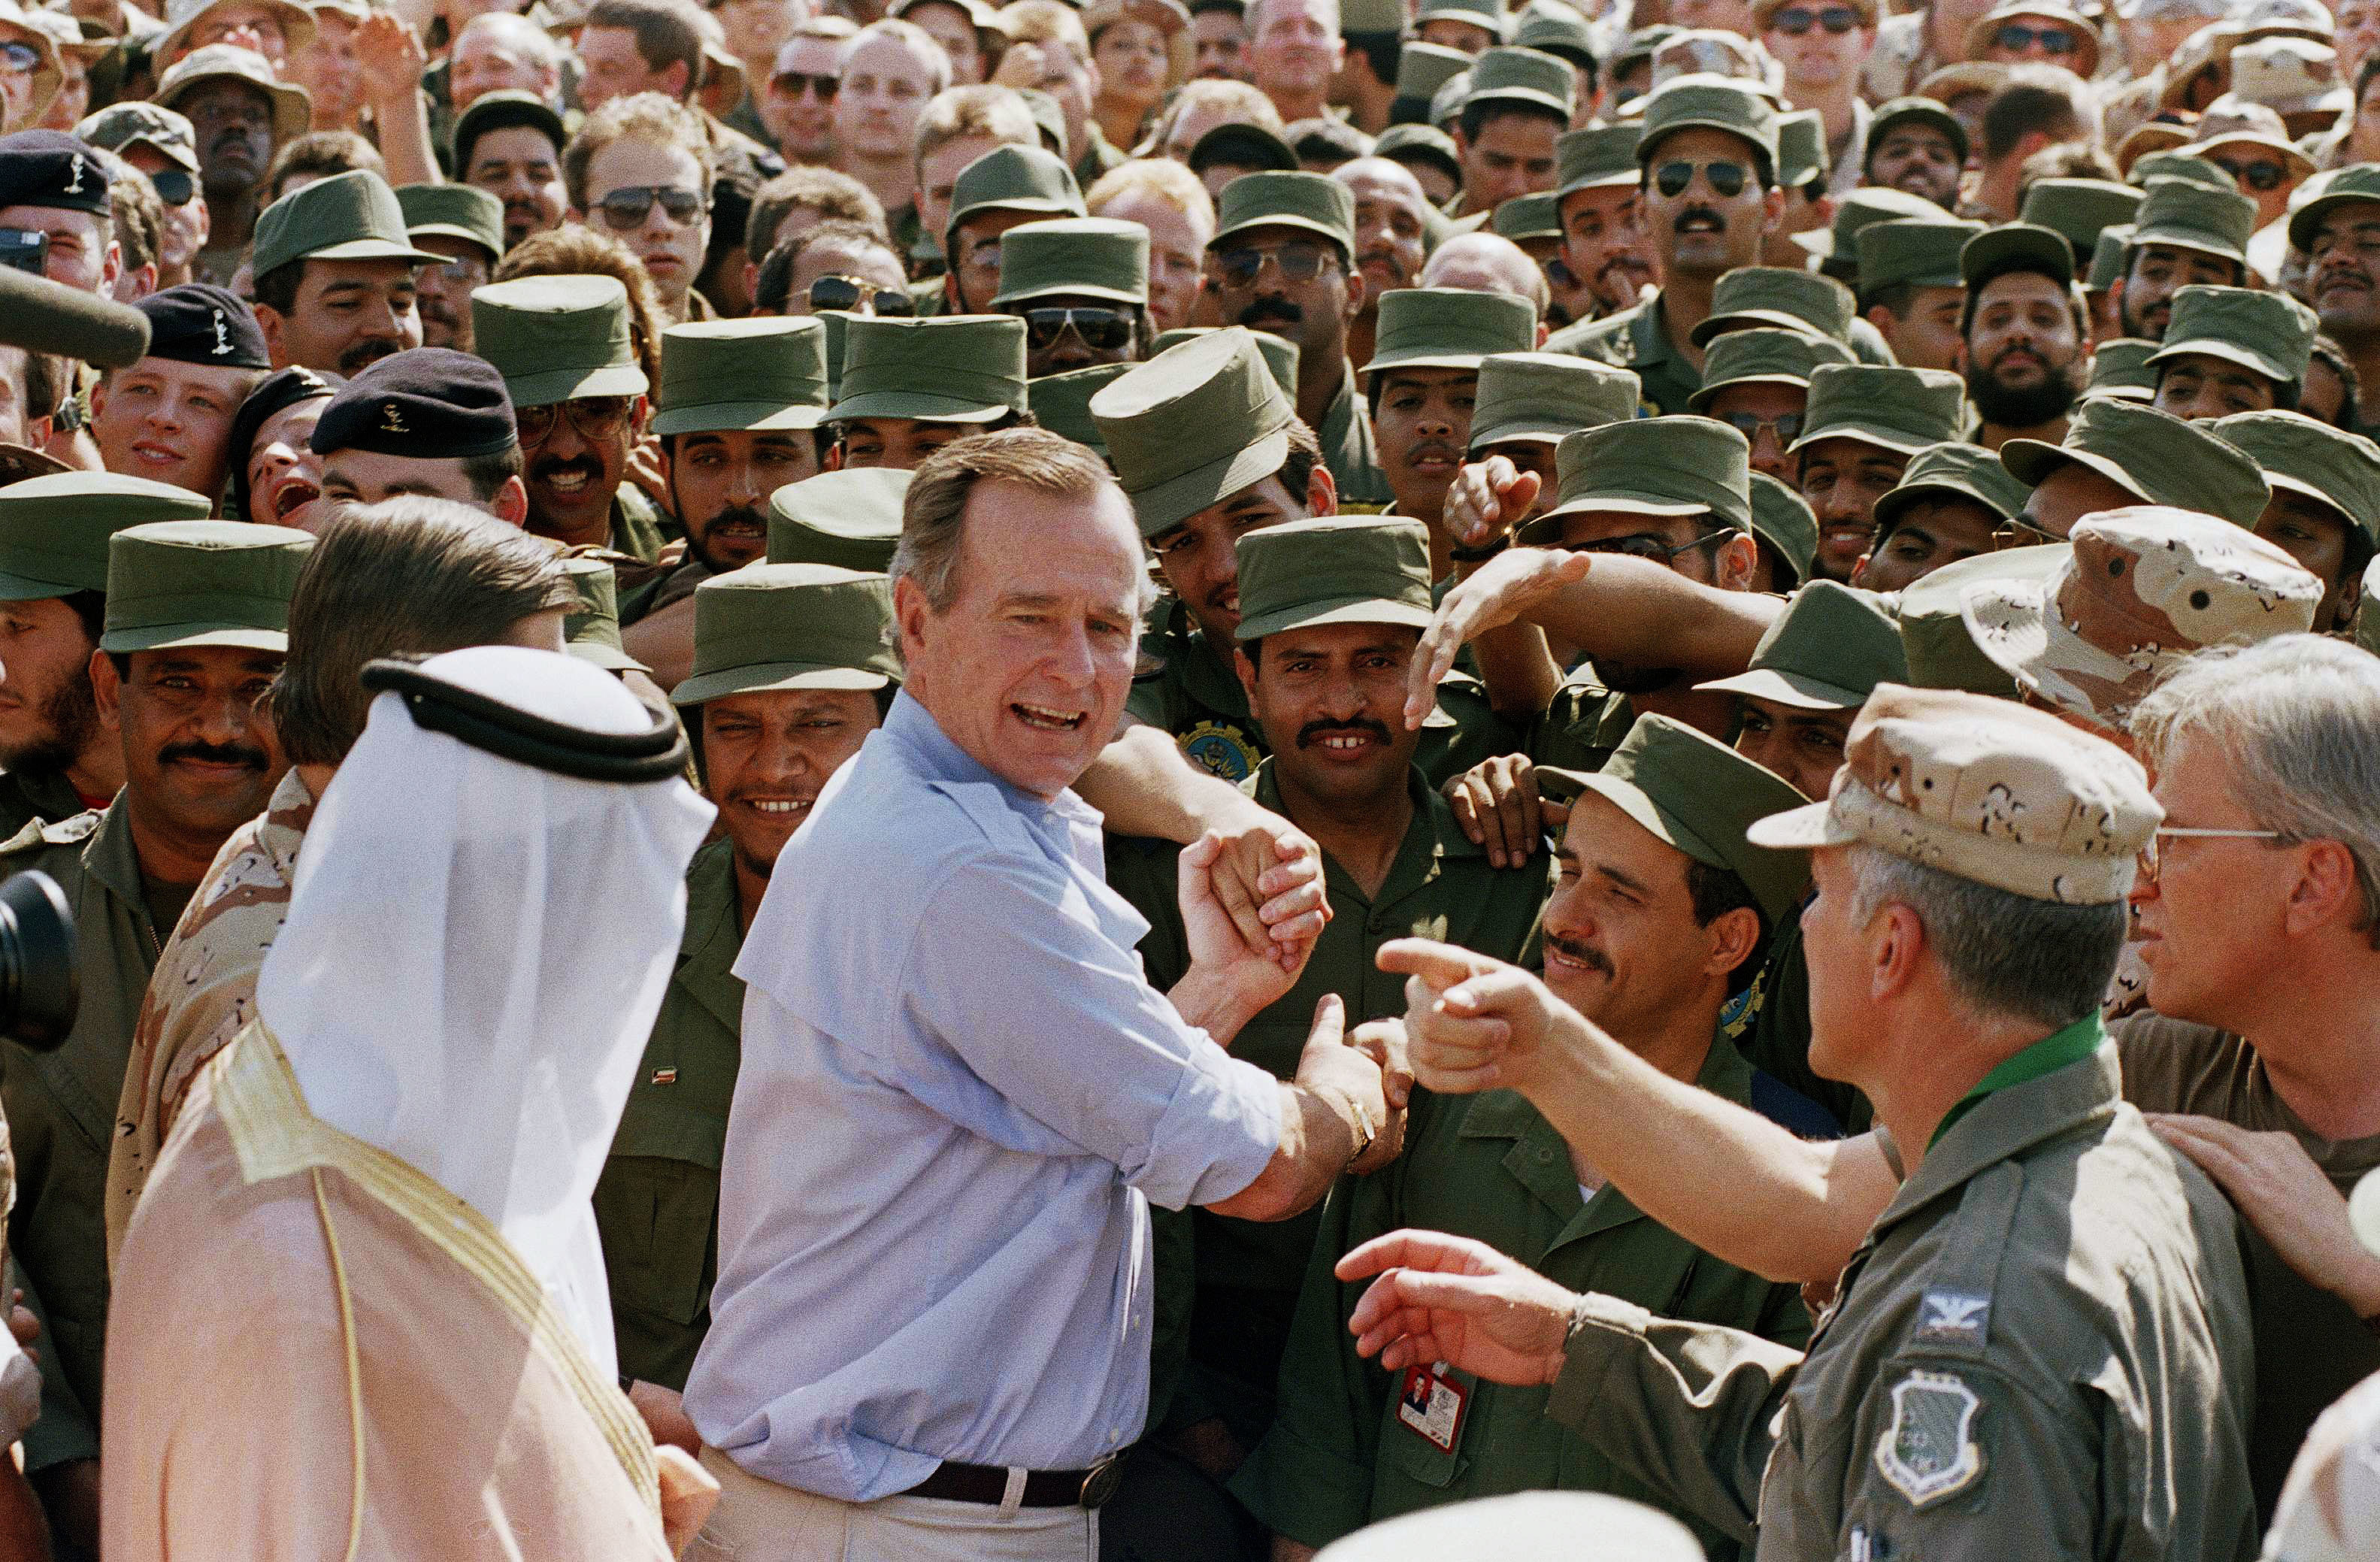 George H.W. Bush en Arabia Saudita. (AP Photo/J. Scott Applewhite, File)